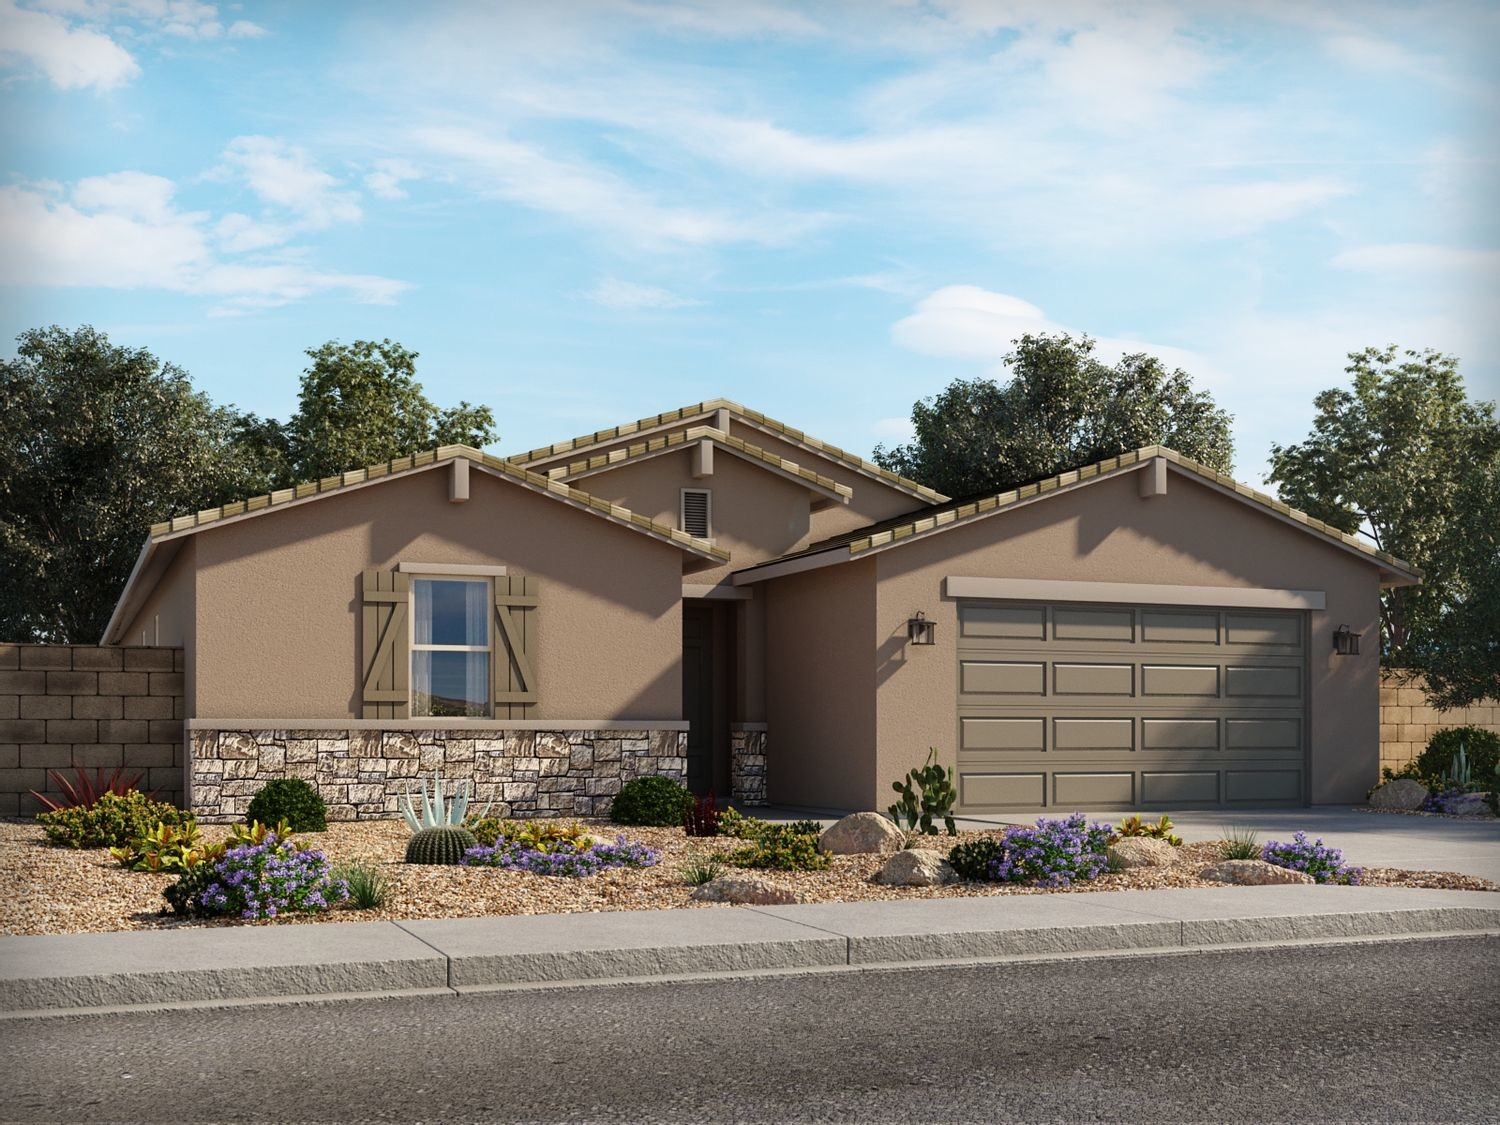 Move In Ready New Home In Archer Meadows - Reserve Series Community